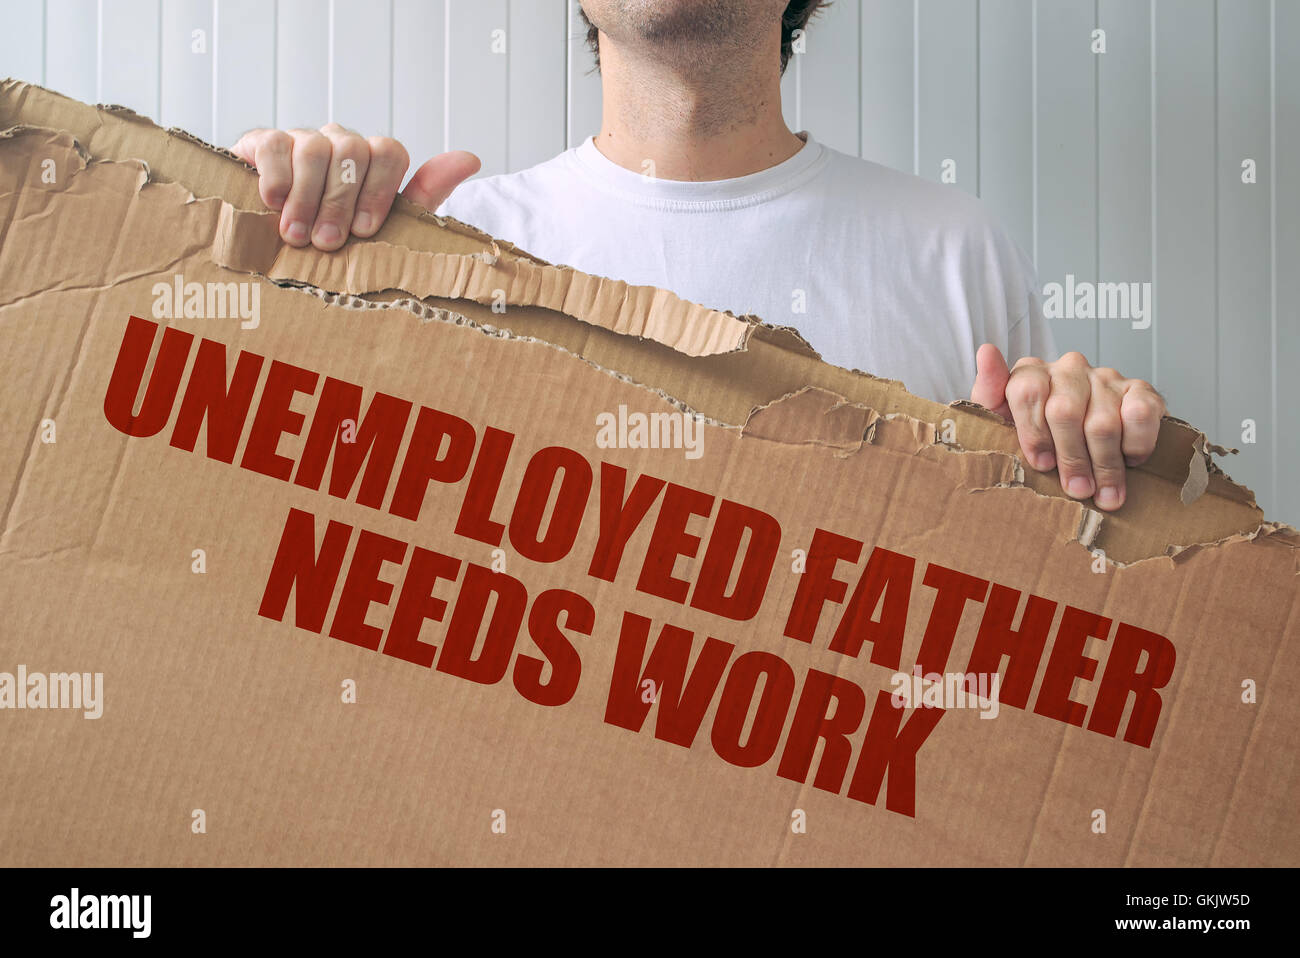 Unemployed father needs work, man holding banner with job seeking title - Stock Image